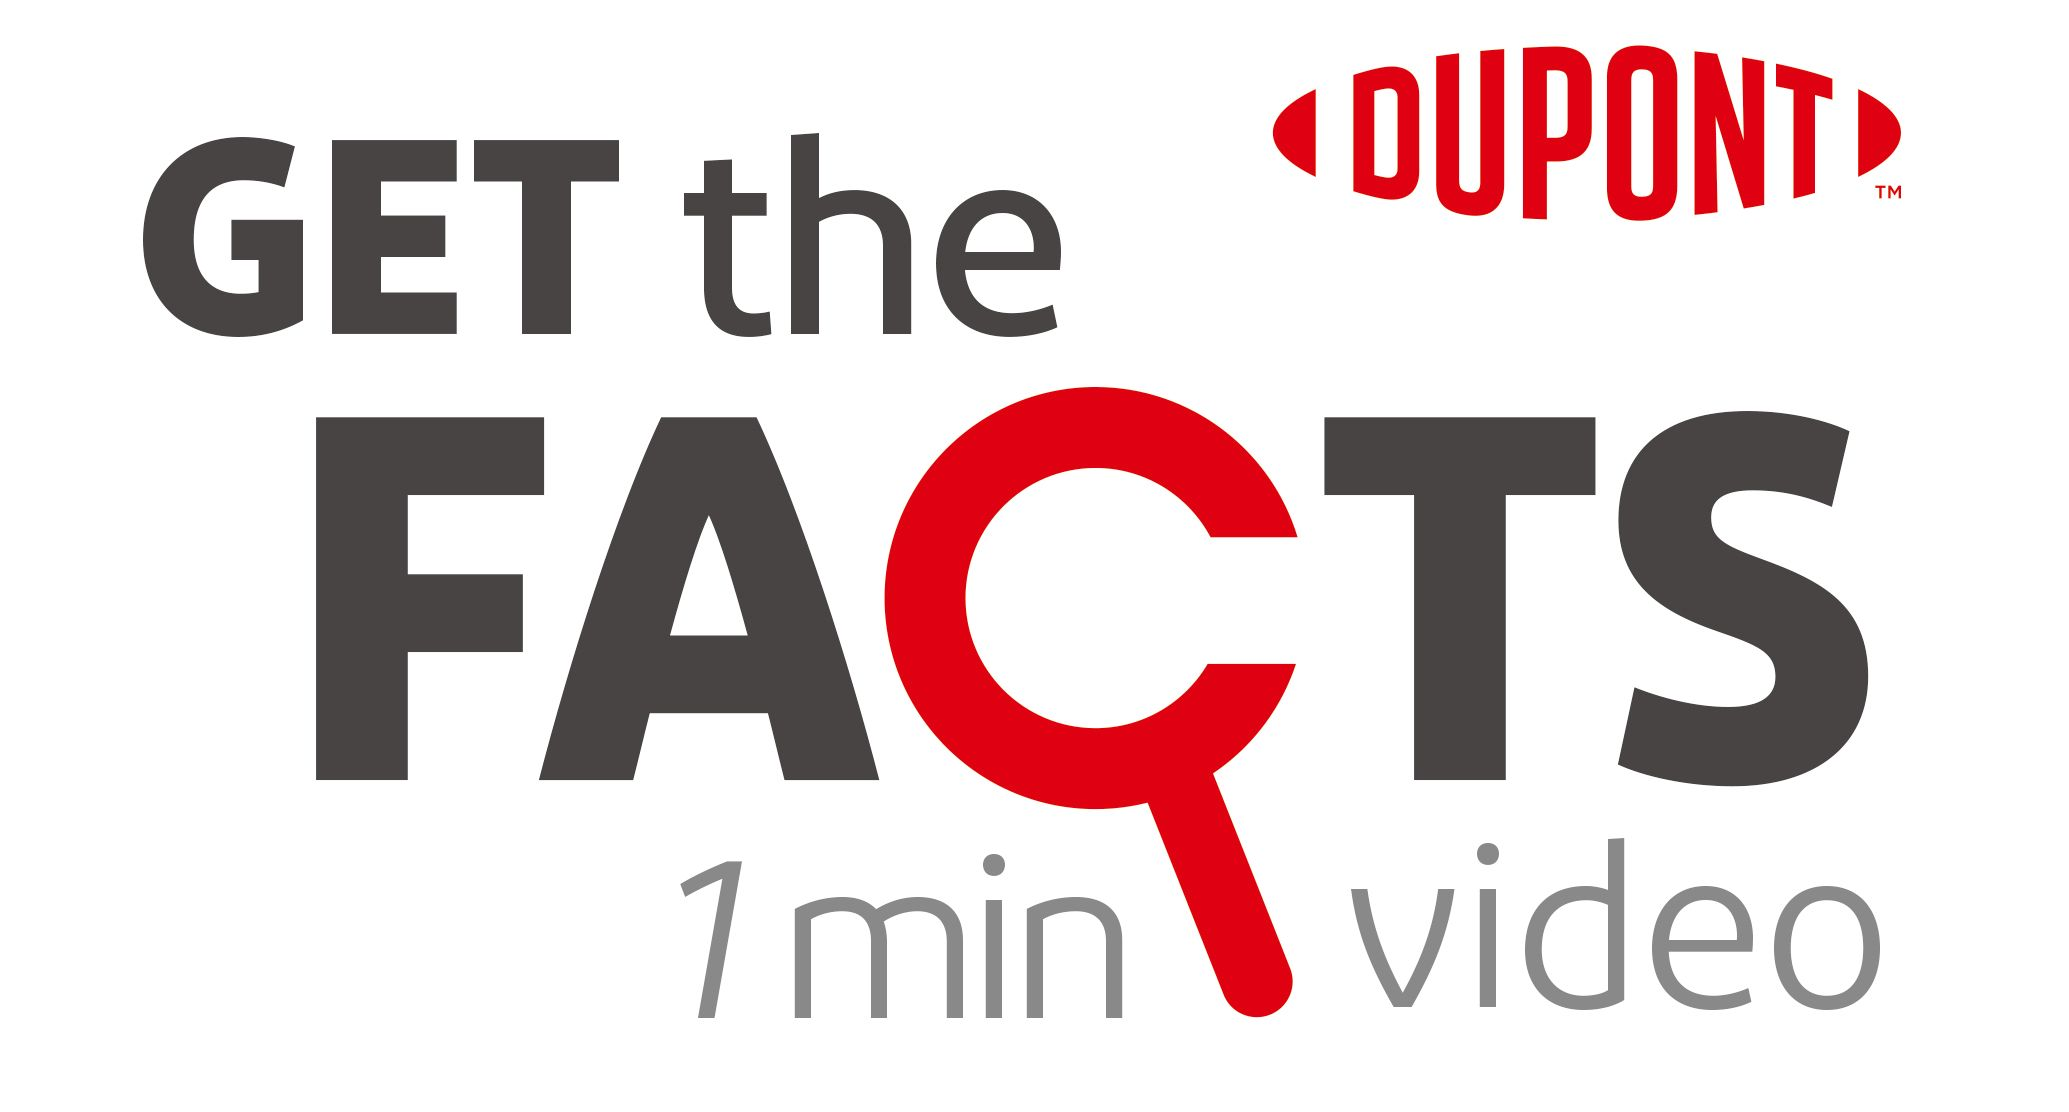 Get-the-facts logo-4